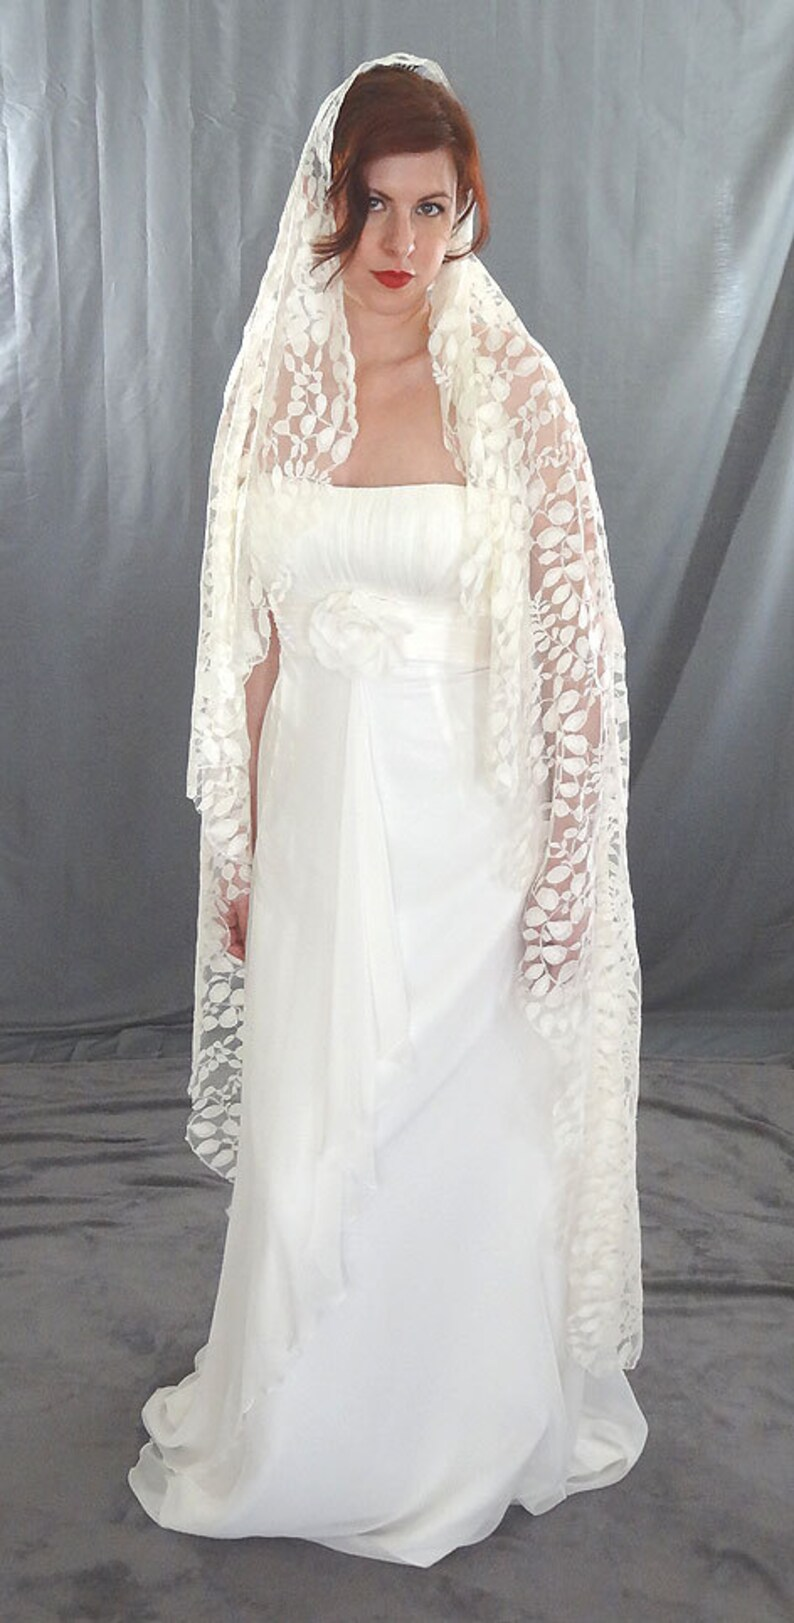 Lace Mantilla Veil with Embroidered Lace in Leaf Pattern image 0